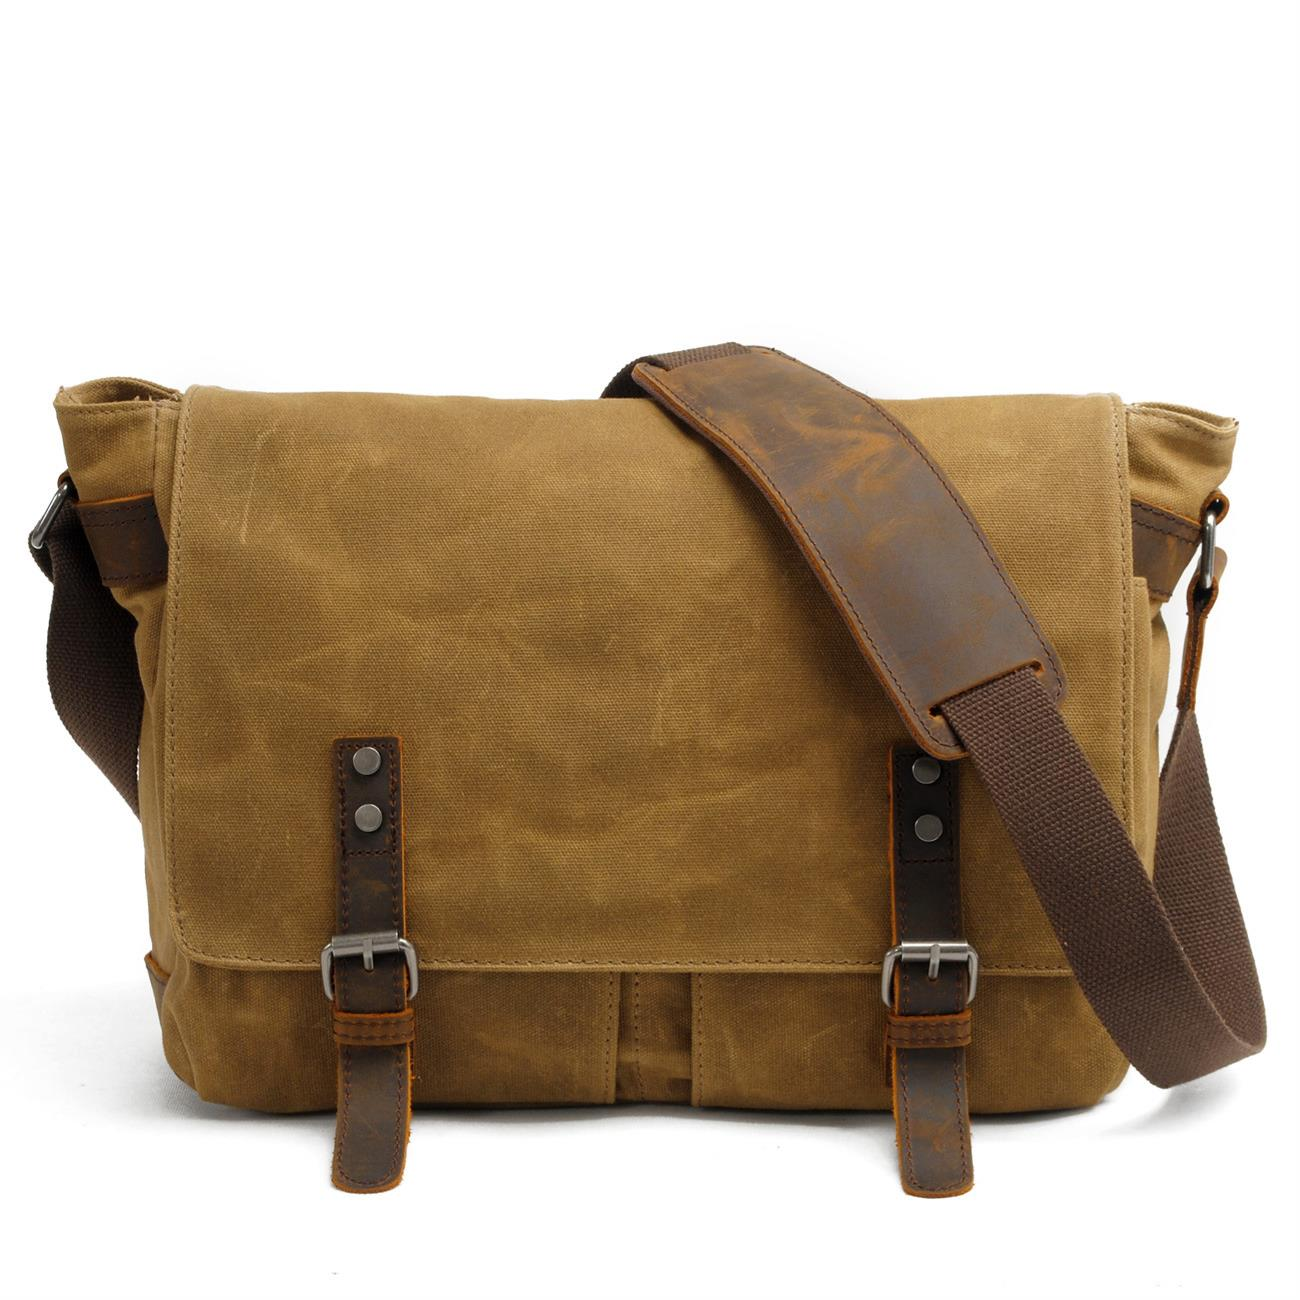 Men Vintage Crazy Horse Leather Strap Canvas Waterproof Crossbody Messenger Bag Male Leisure School Laptop Shoulder Bags for Boy